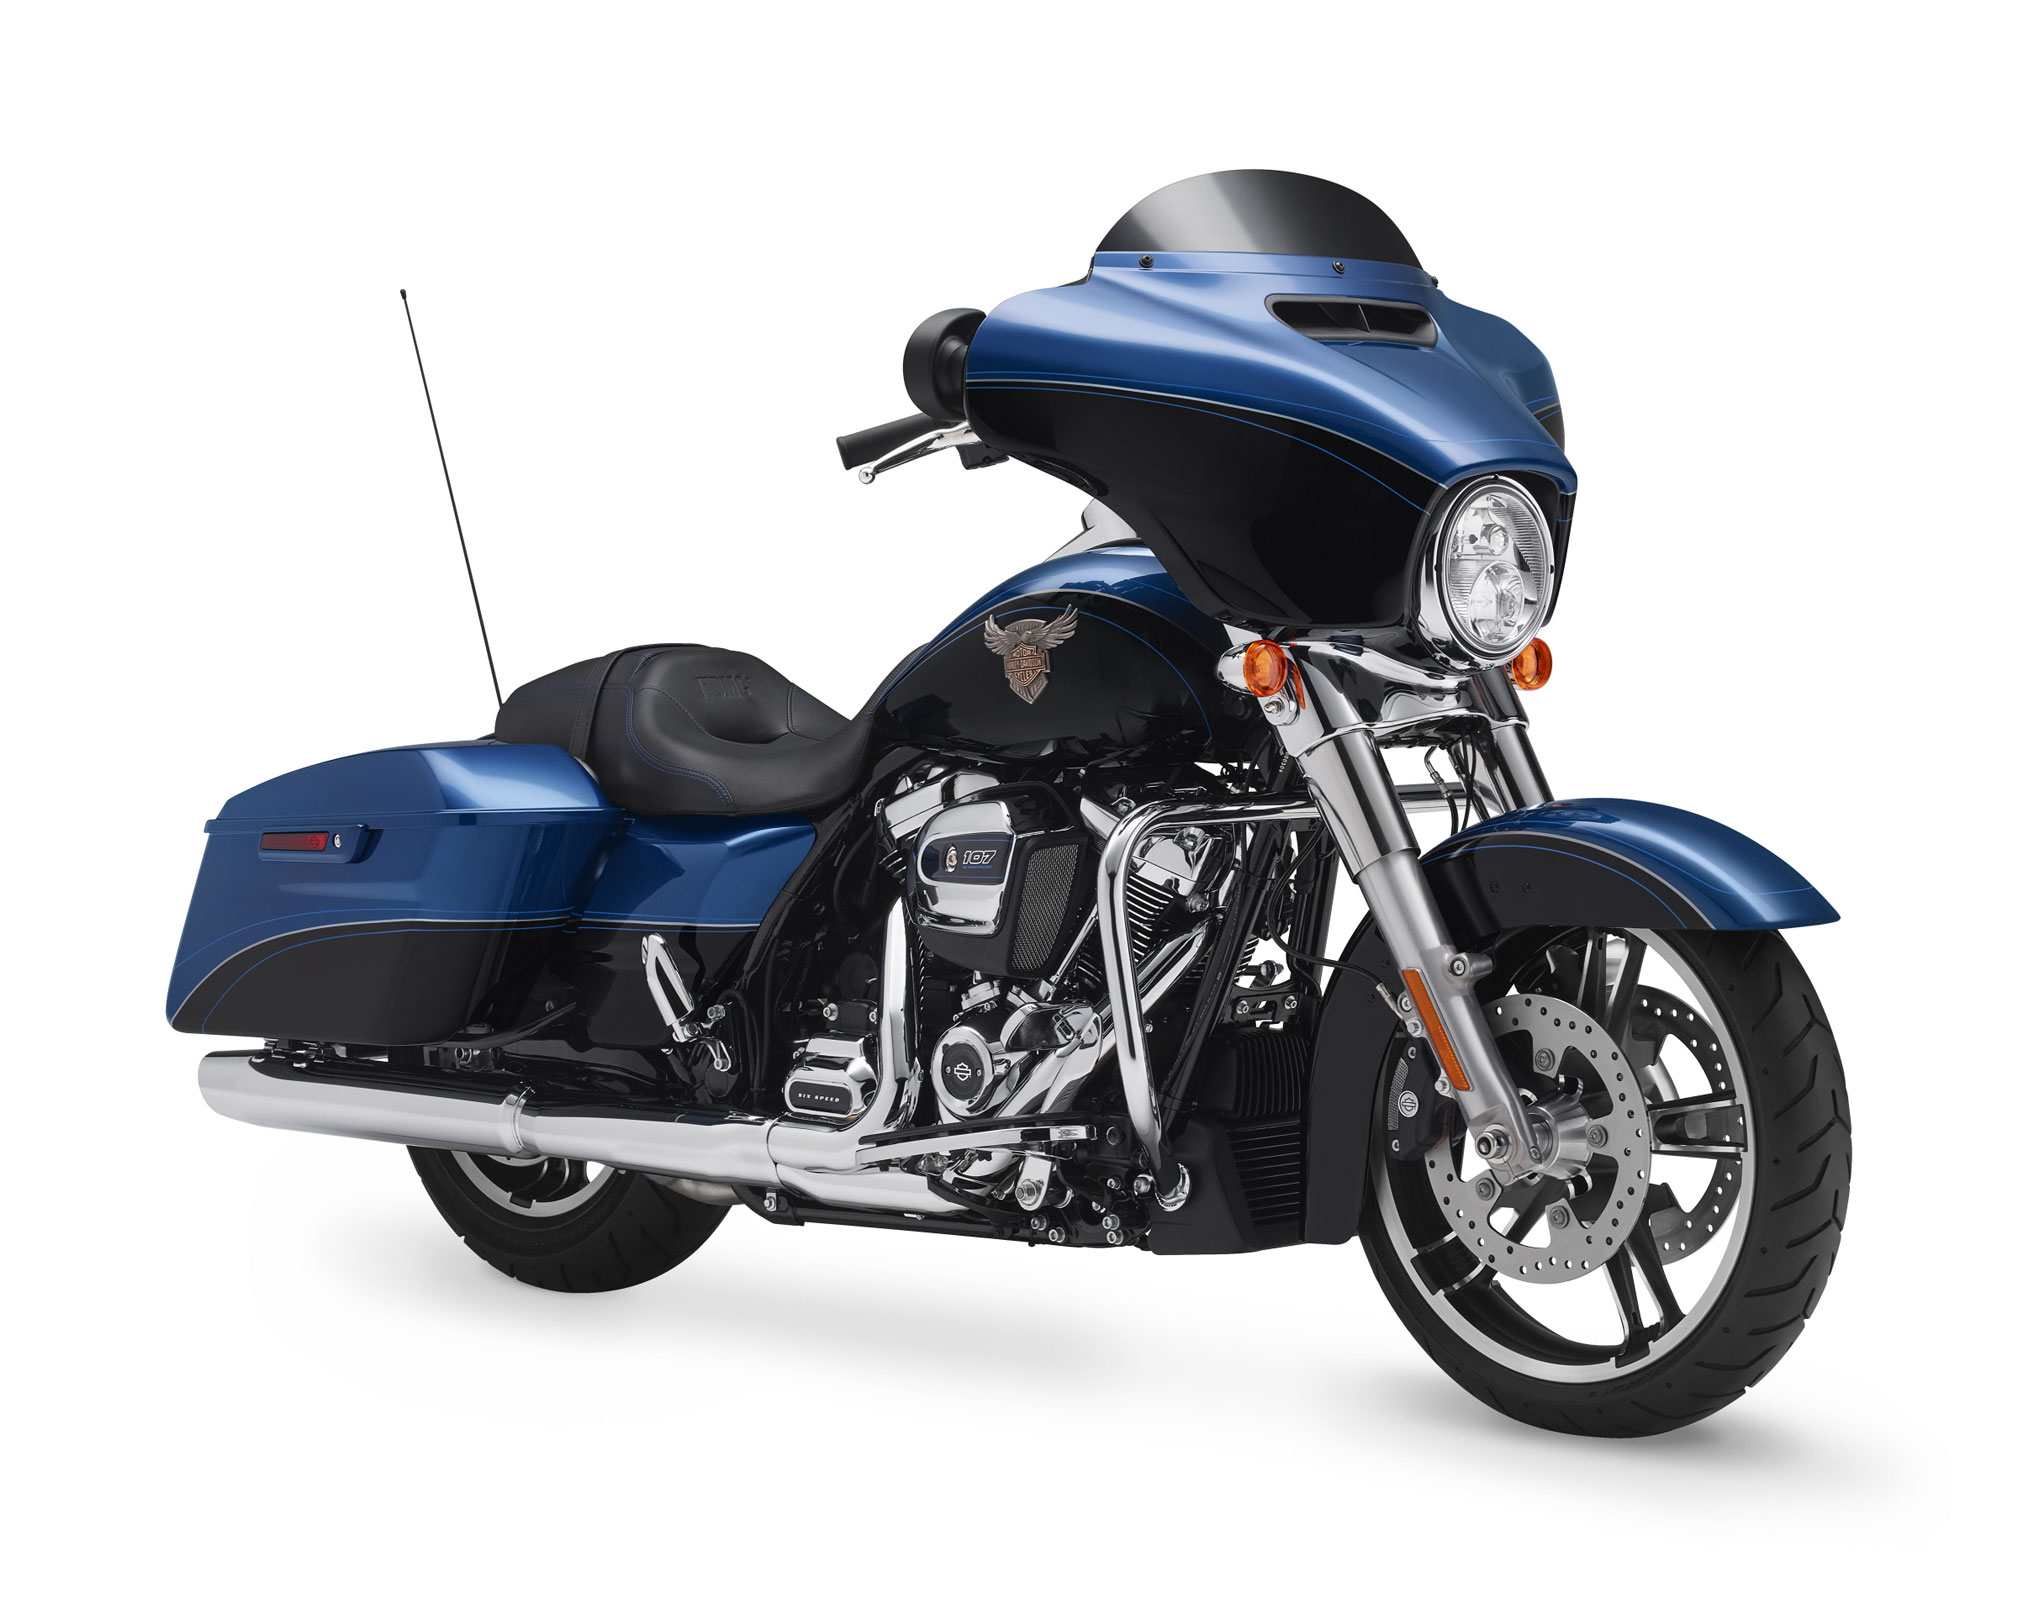 2018 harley davidson street glide 115th anniversary review. Black Bedroom Furniture Sets. Home Design Ideas